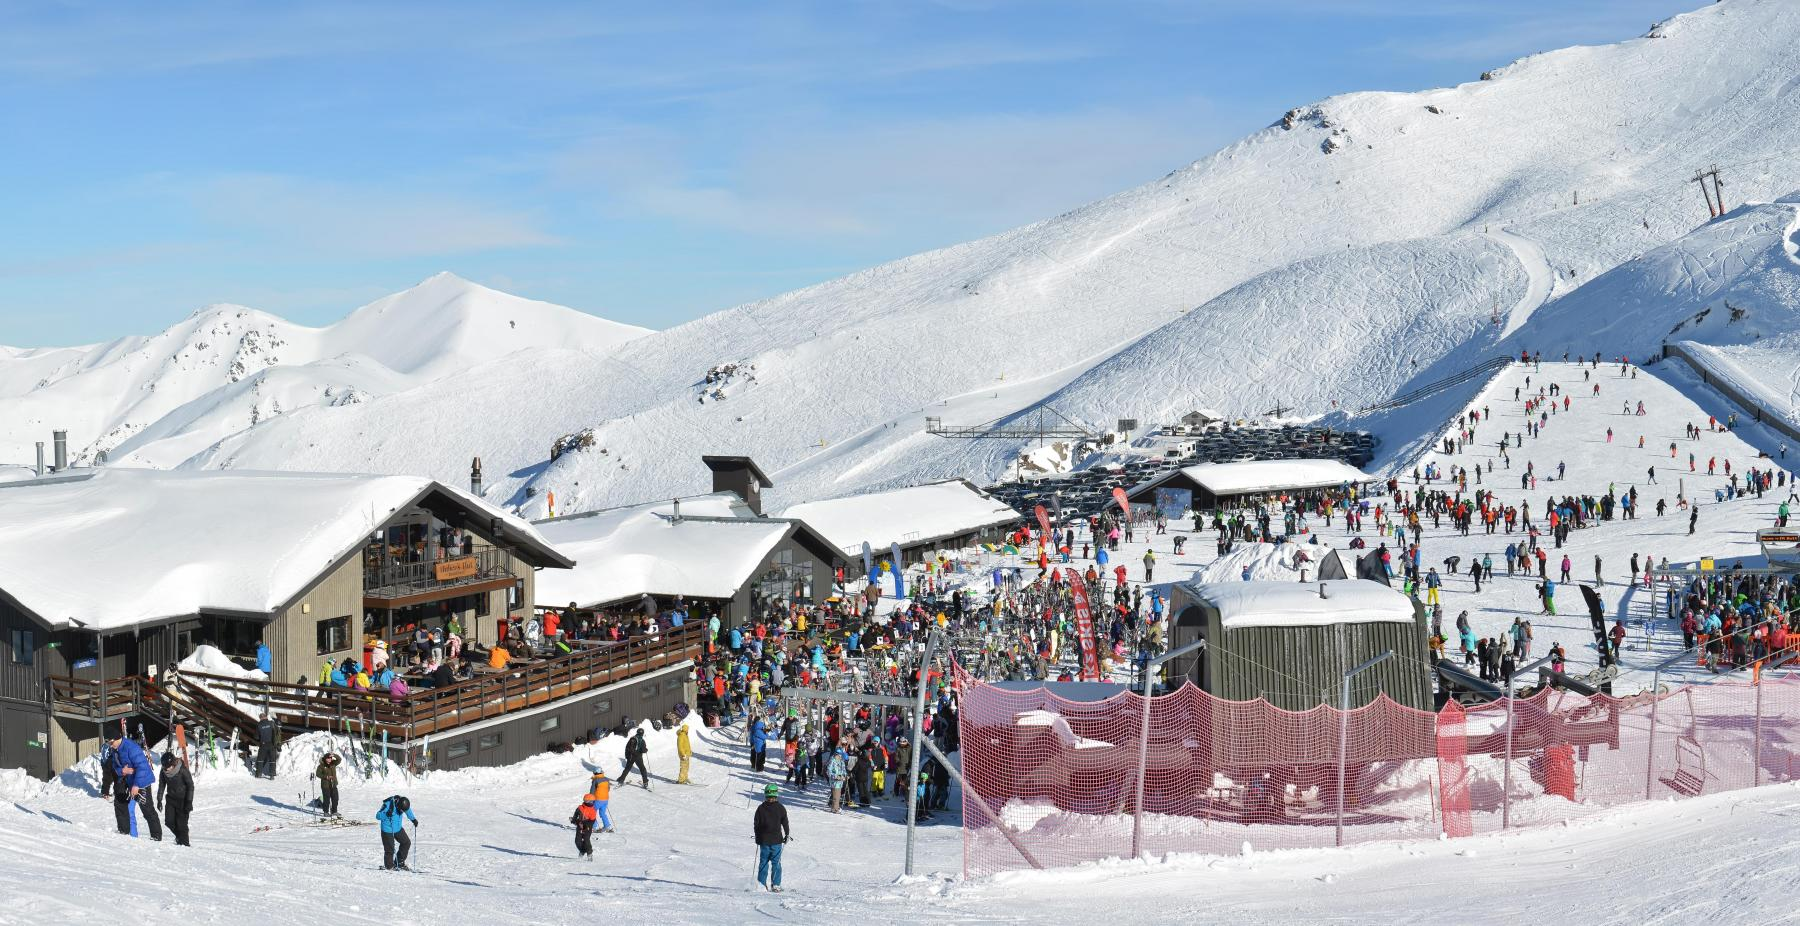 Panoramic view of the Mount Hutt Ski Field at Lunch Time. Skiers prepare to ride on the Chairlift outside the restaurant, Canterbury New Zealand_Shutterstock-min